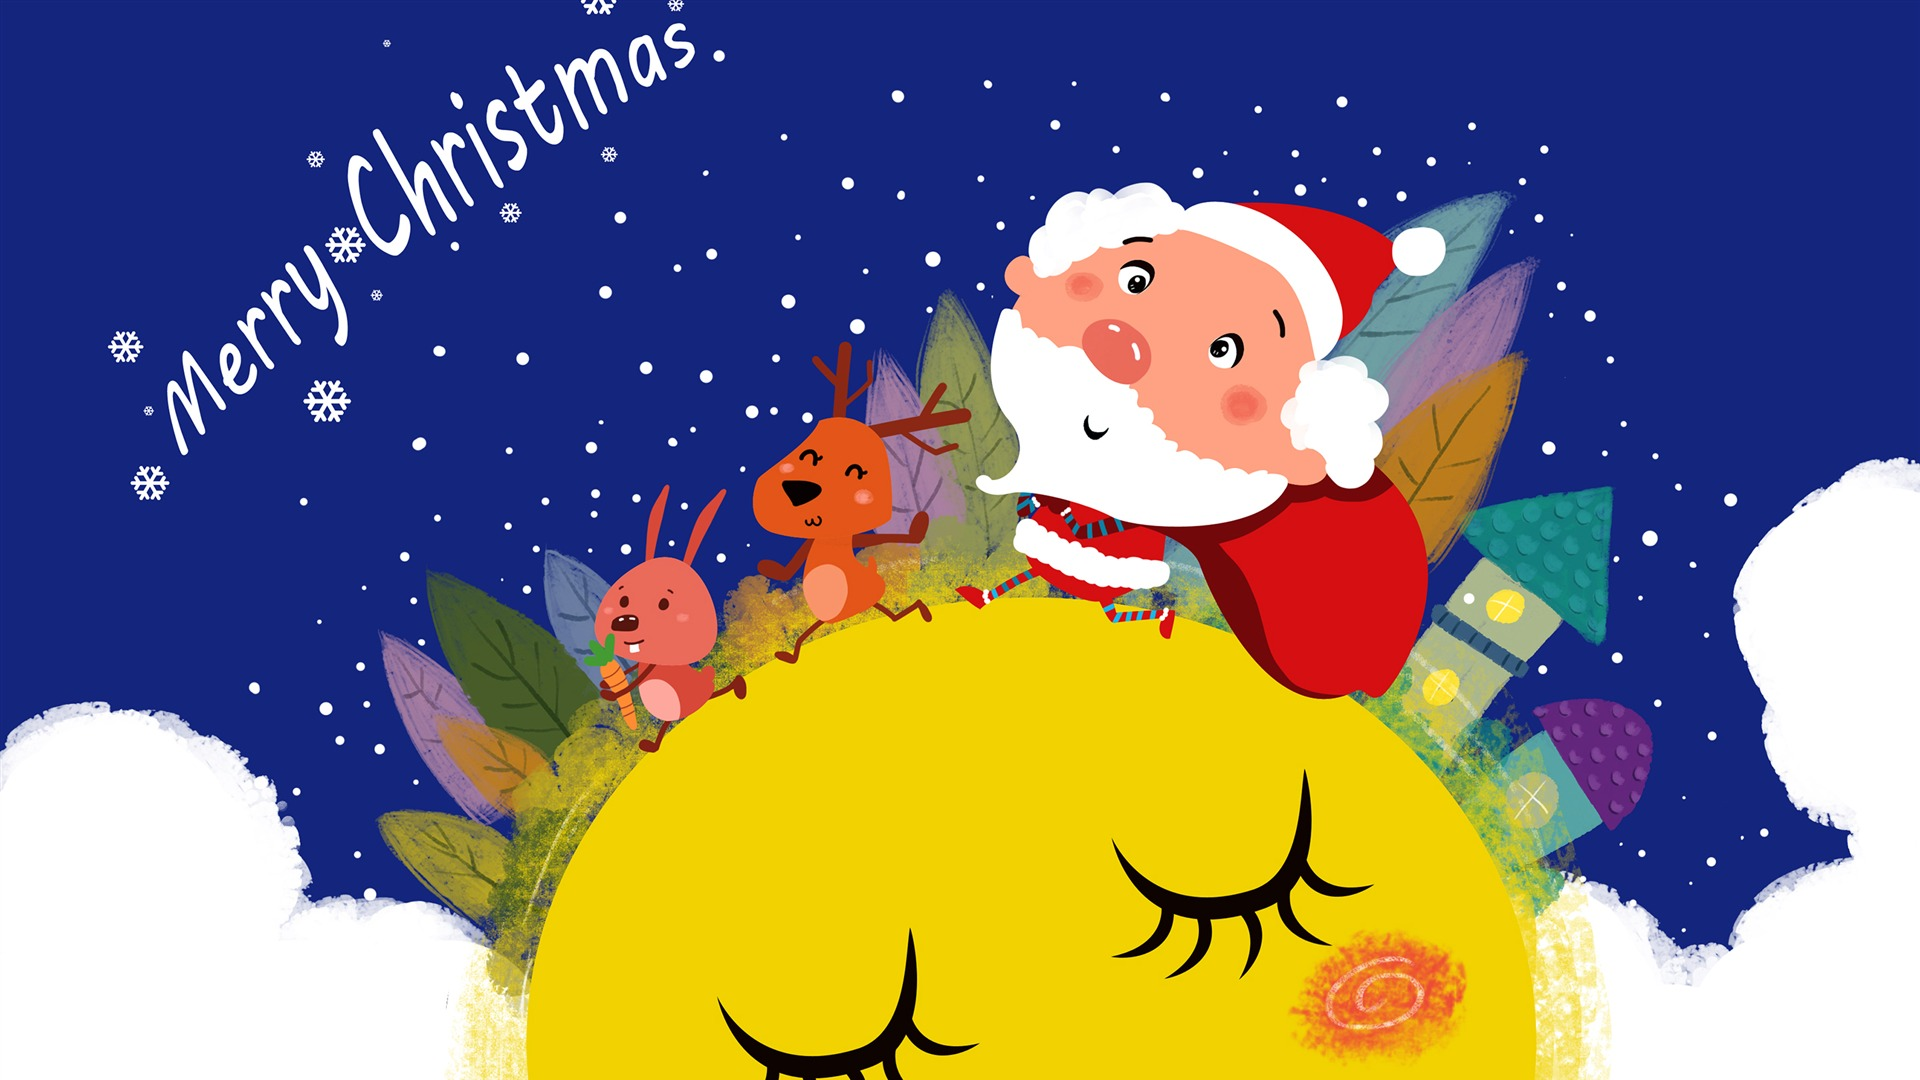 Cute Cartoon Elk Santa Claus Merry Christmas Wallpaper 1920x1080